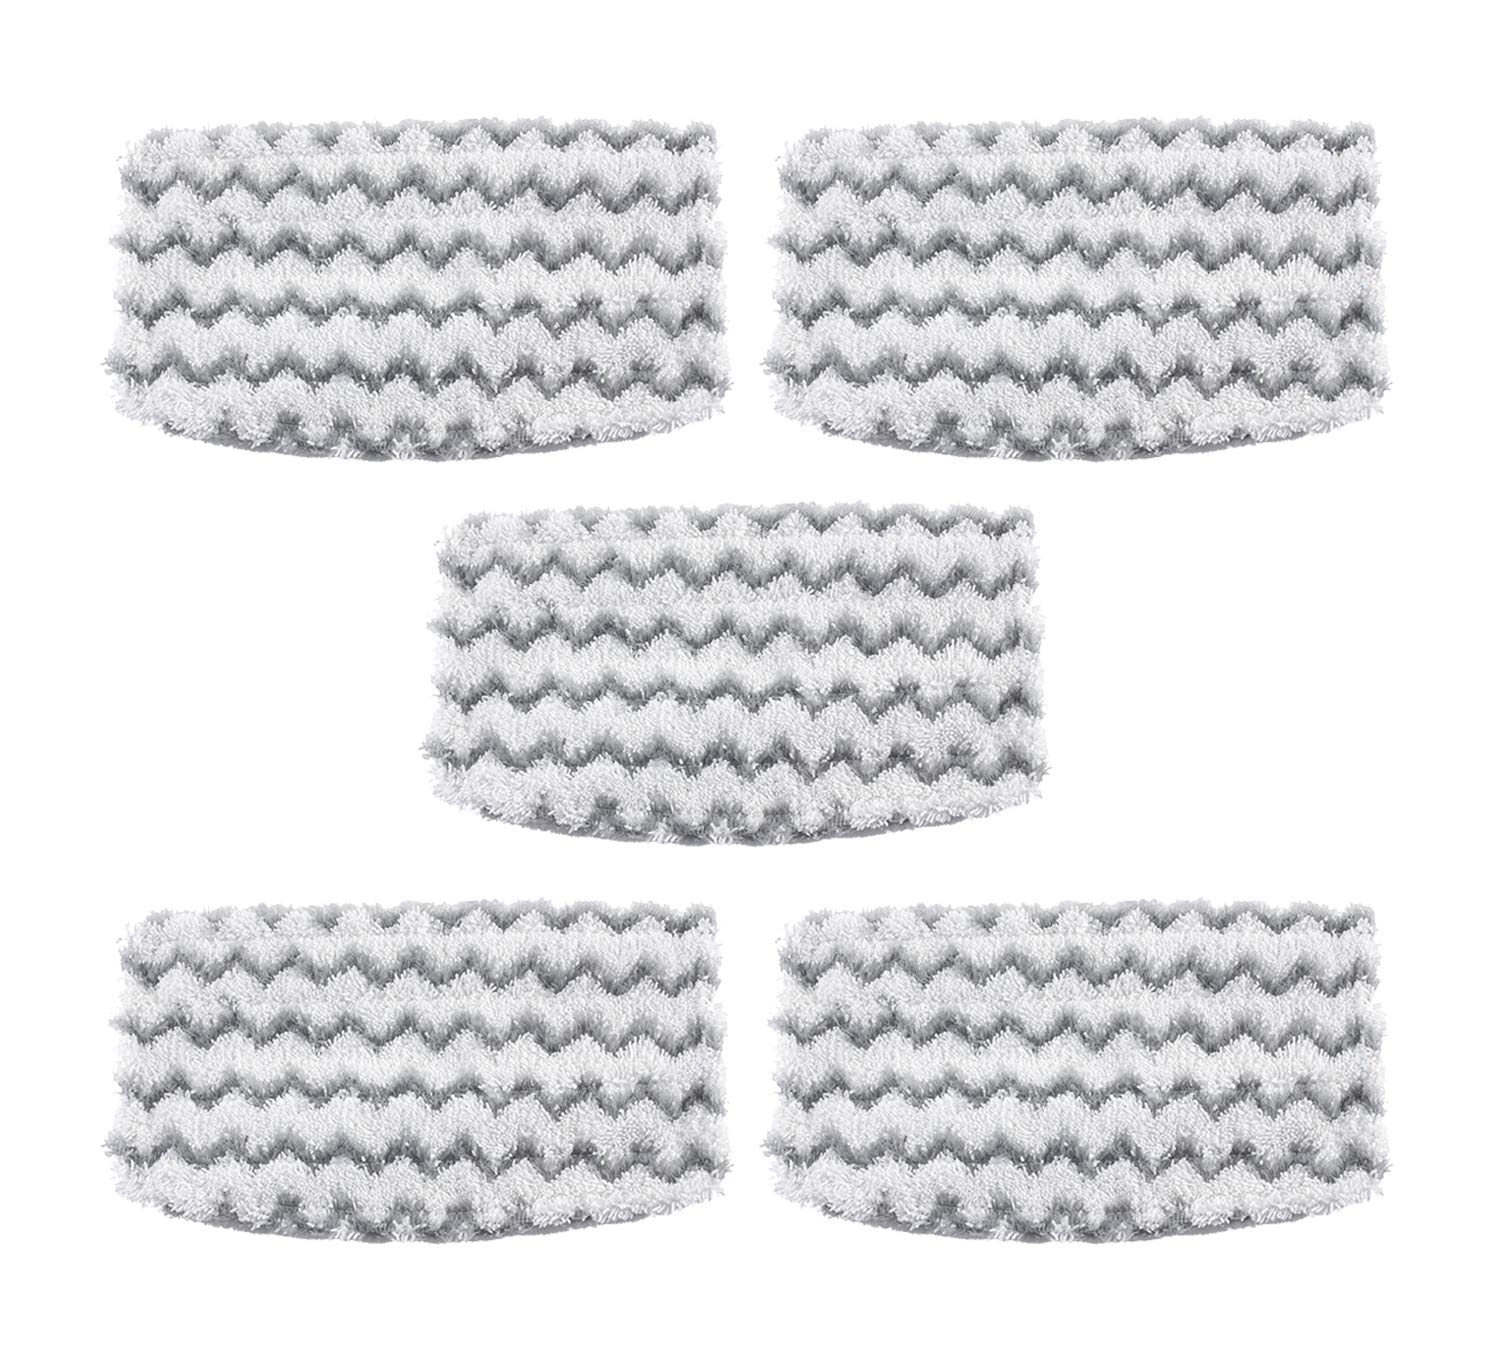 EZCARRIER Steam Mop Pads Replacement for Shark Vacuum Cleaner S1000 S1000A S1000C S1000WM S1001C (Pack of 5)